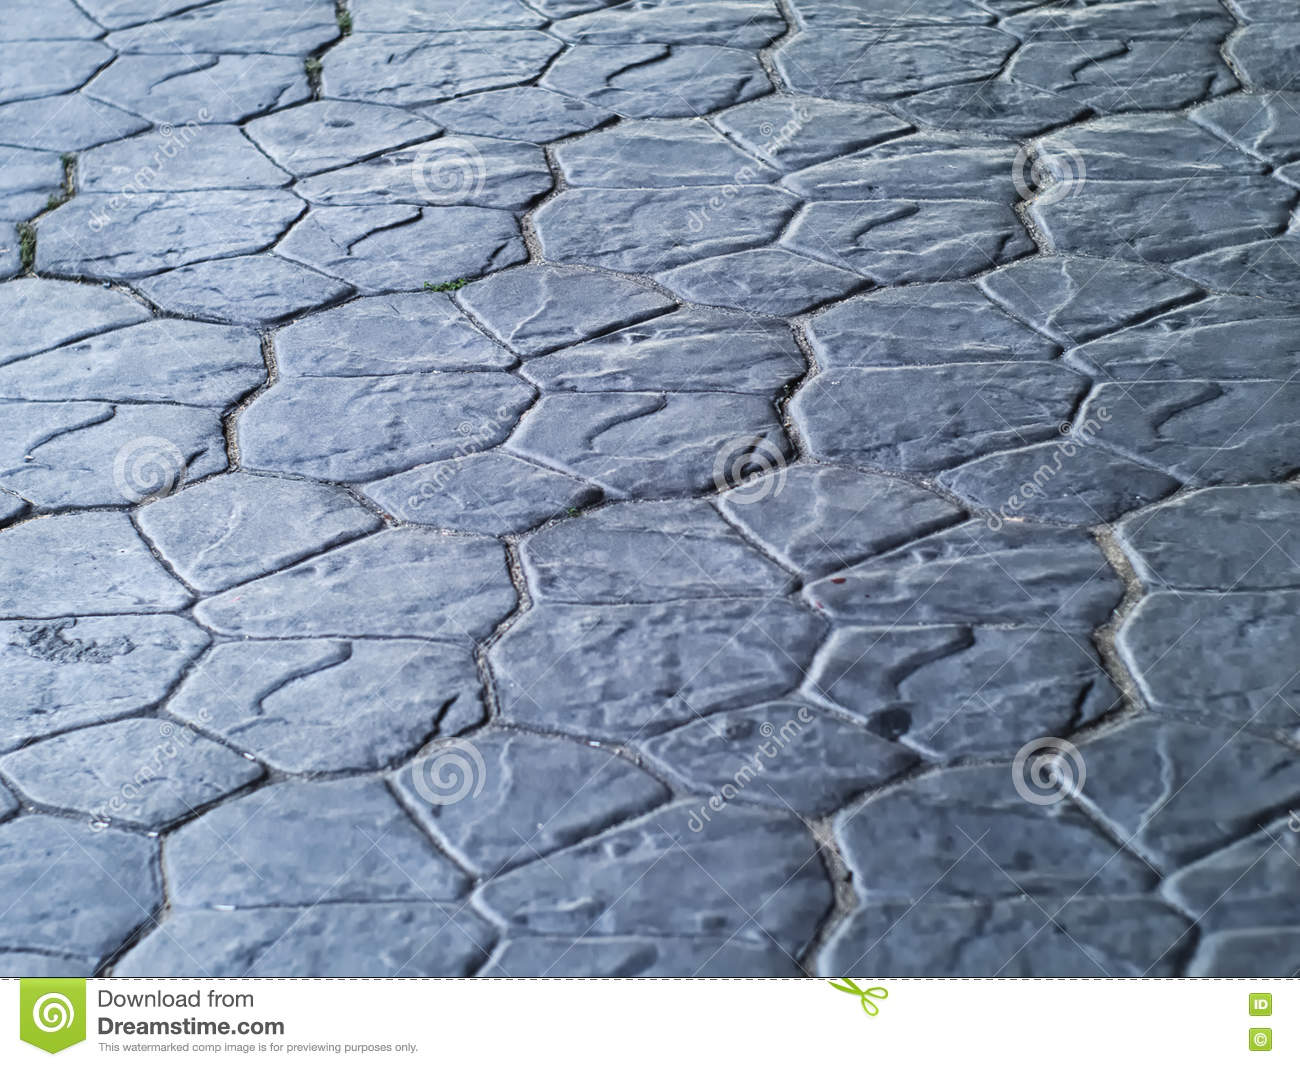 Bluish grey stone floor stock photo. Image of sidewalk - 77250744